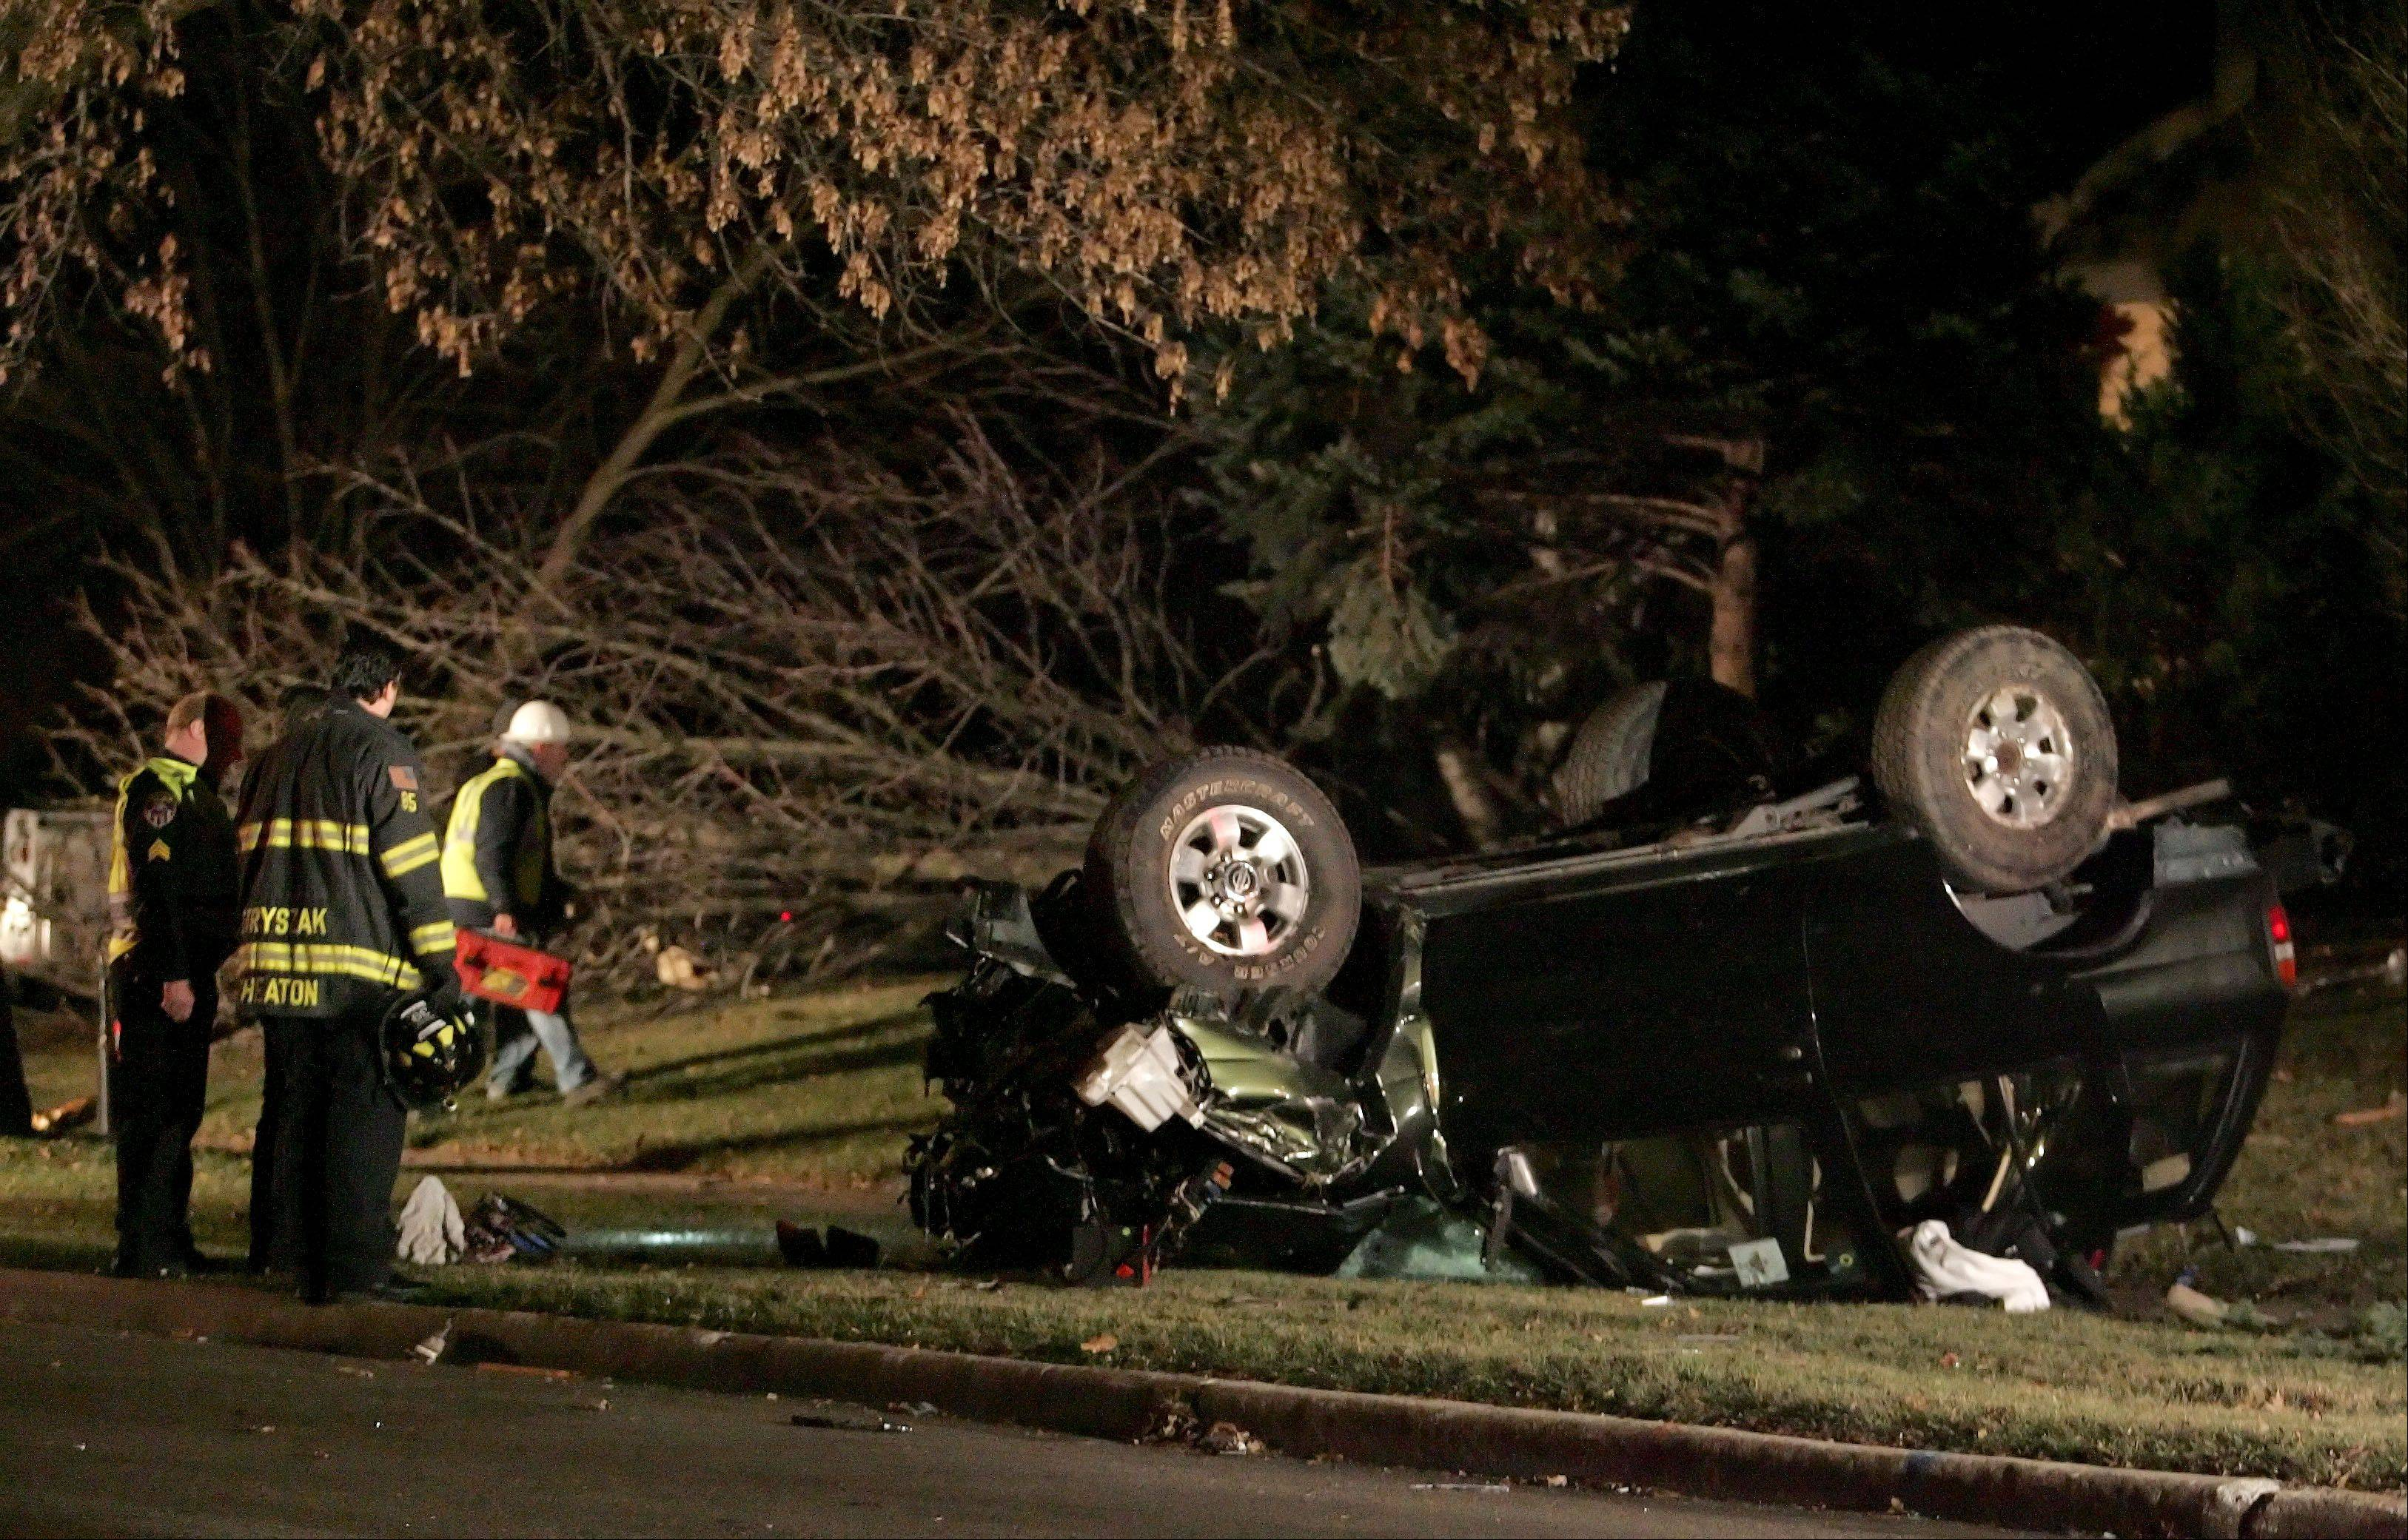 A Downers Grove woman was sentenced to three years in prison for this Jan. 10 DUI crash into a home at Farnham Road and Huntleigh Court in Wheaton.